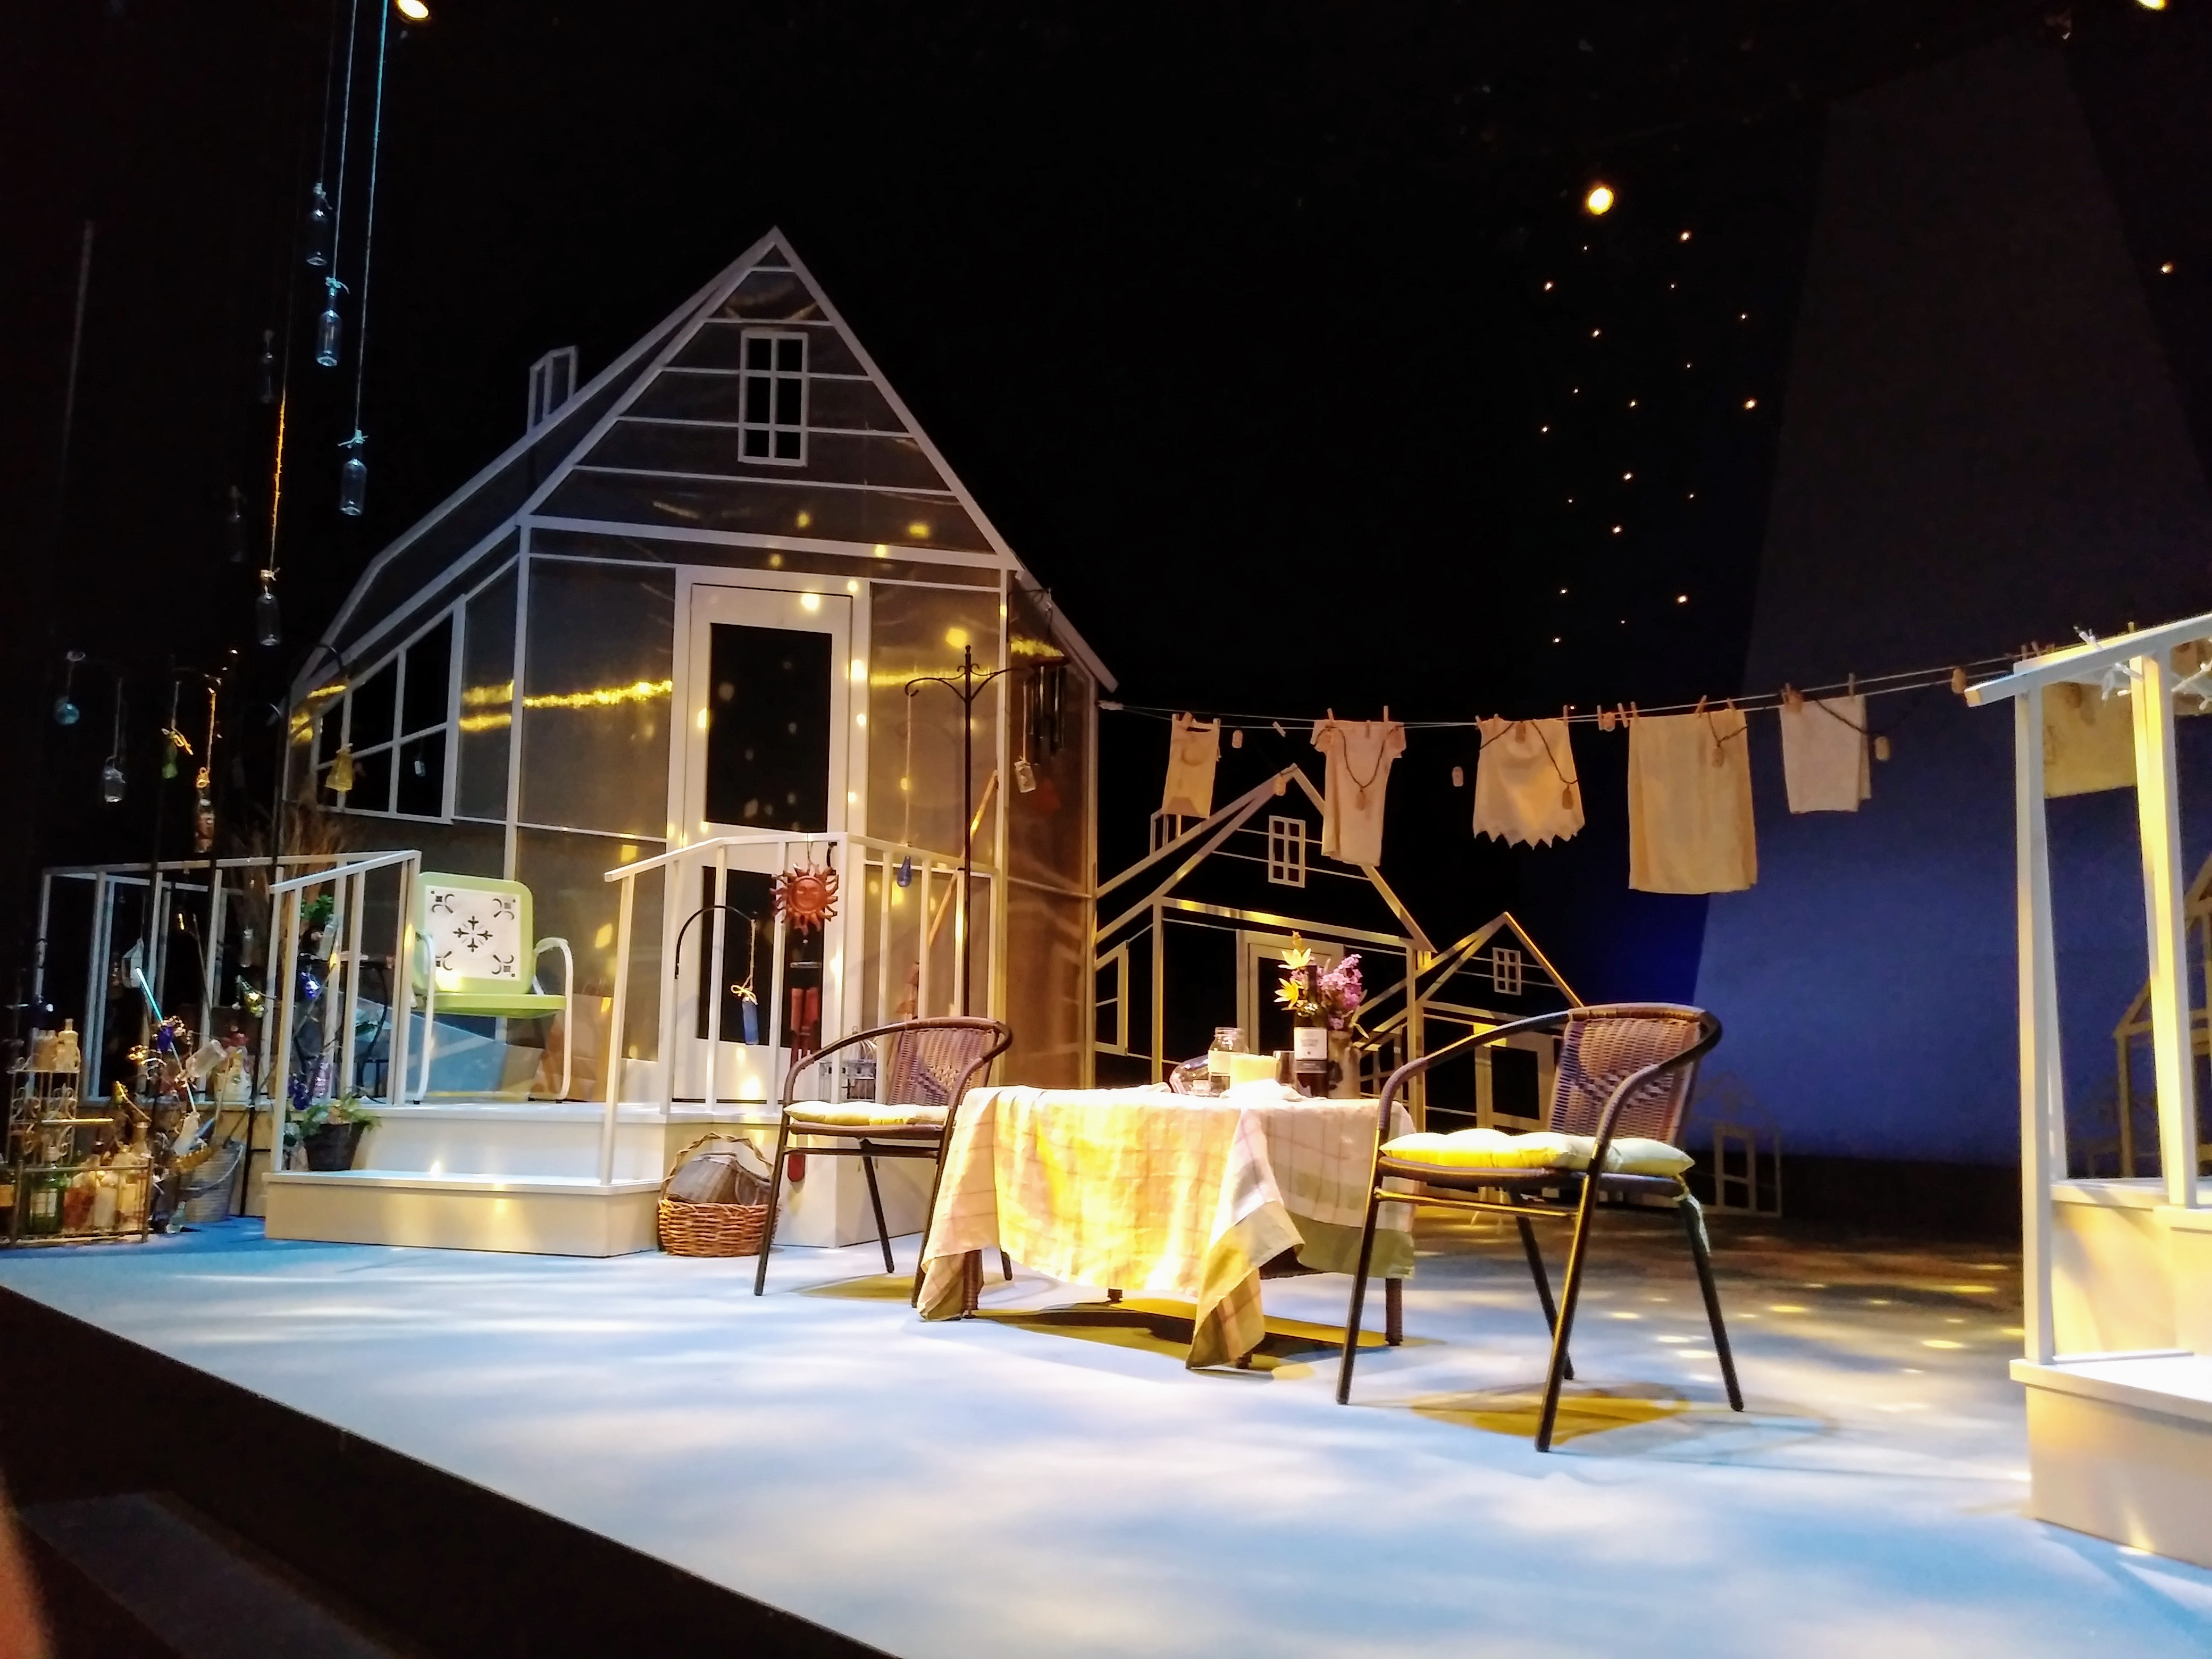 Merrimack Repertory Theatre's 'Maytag Virgin' set